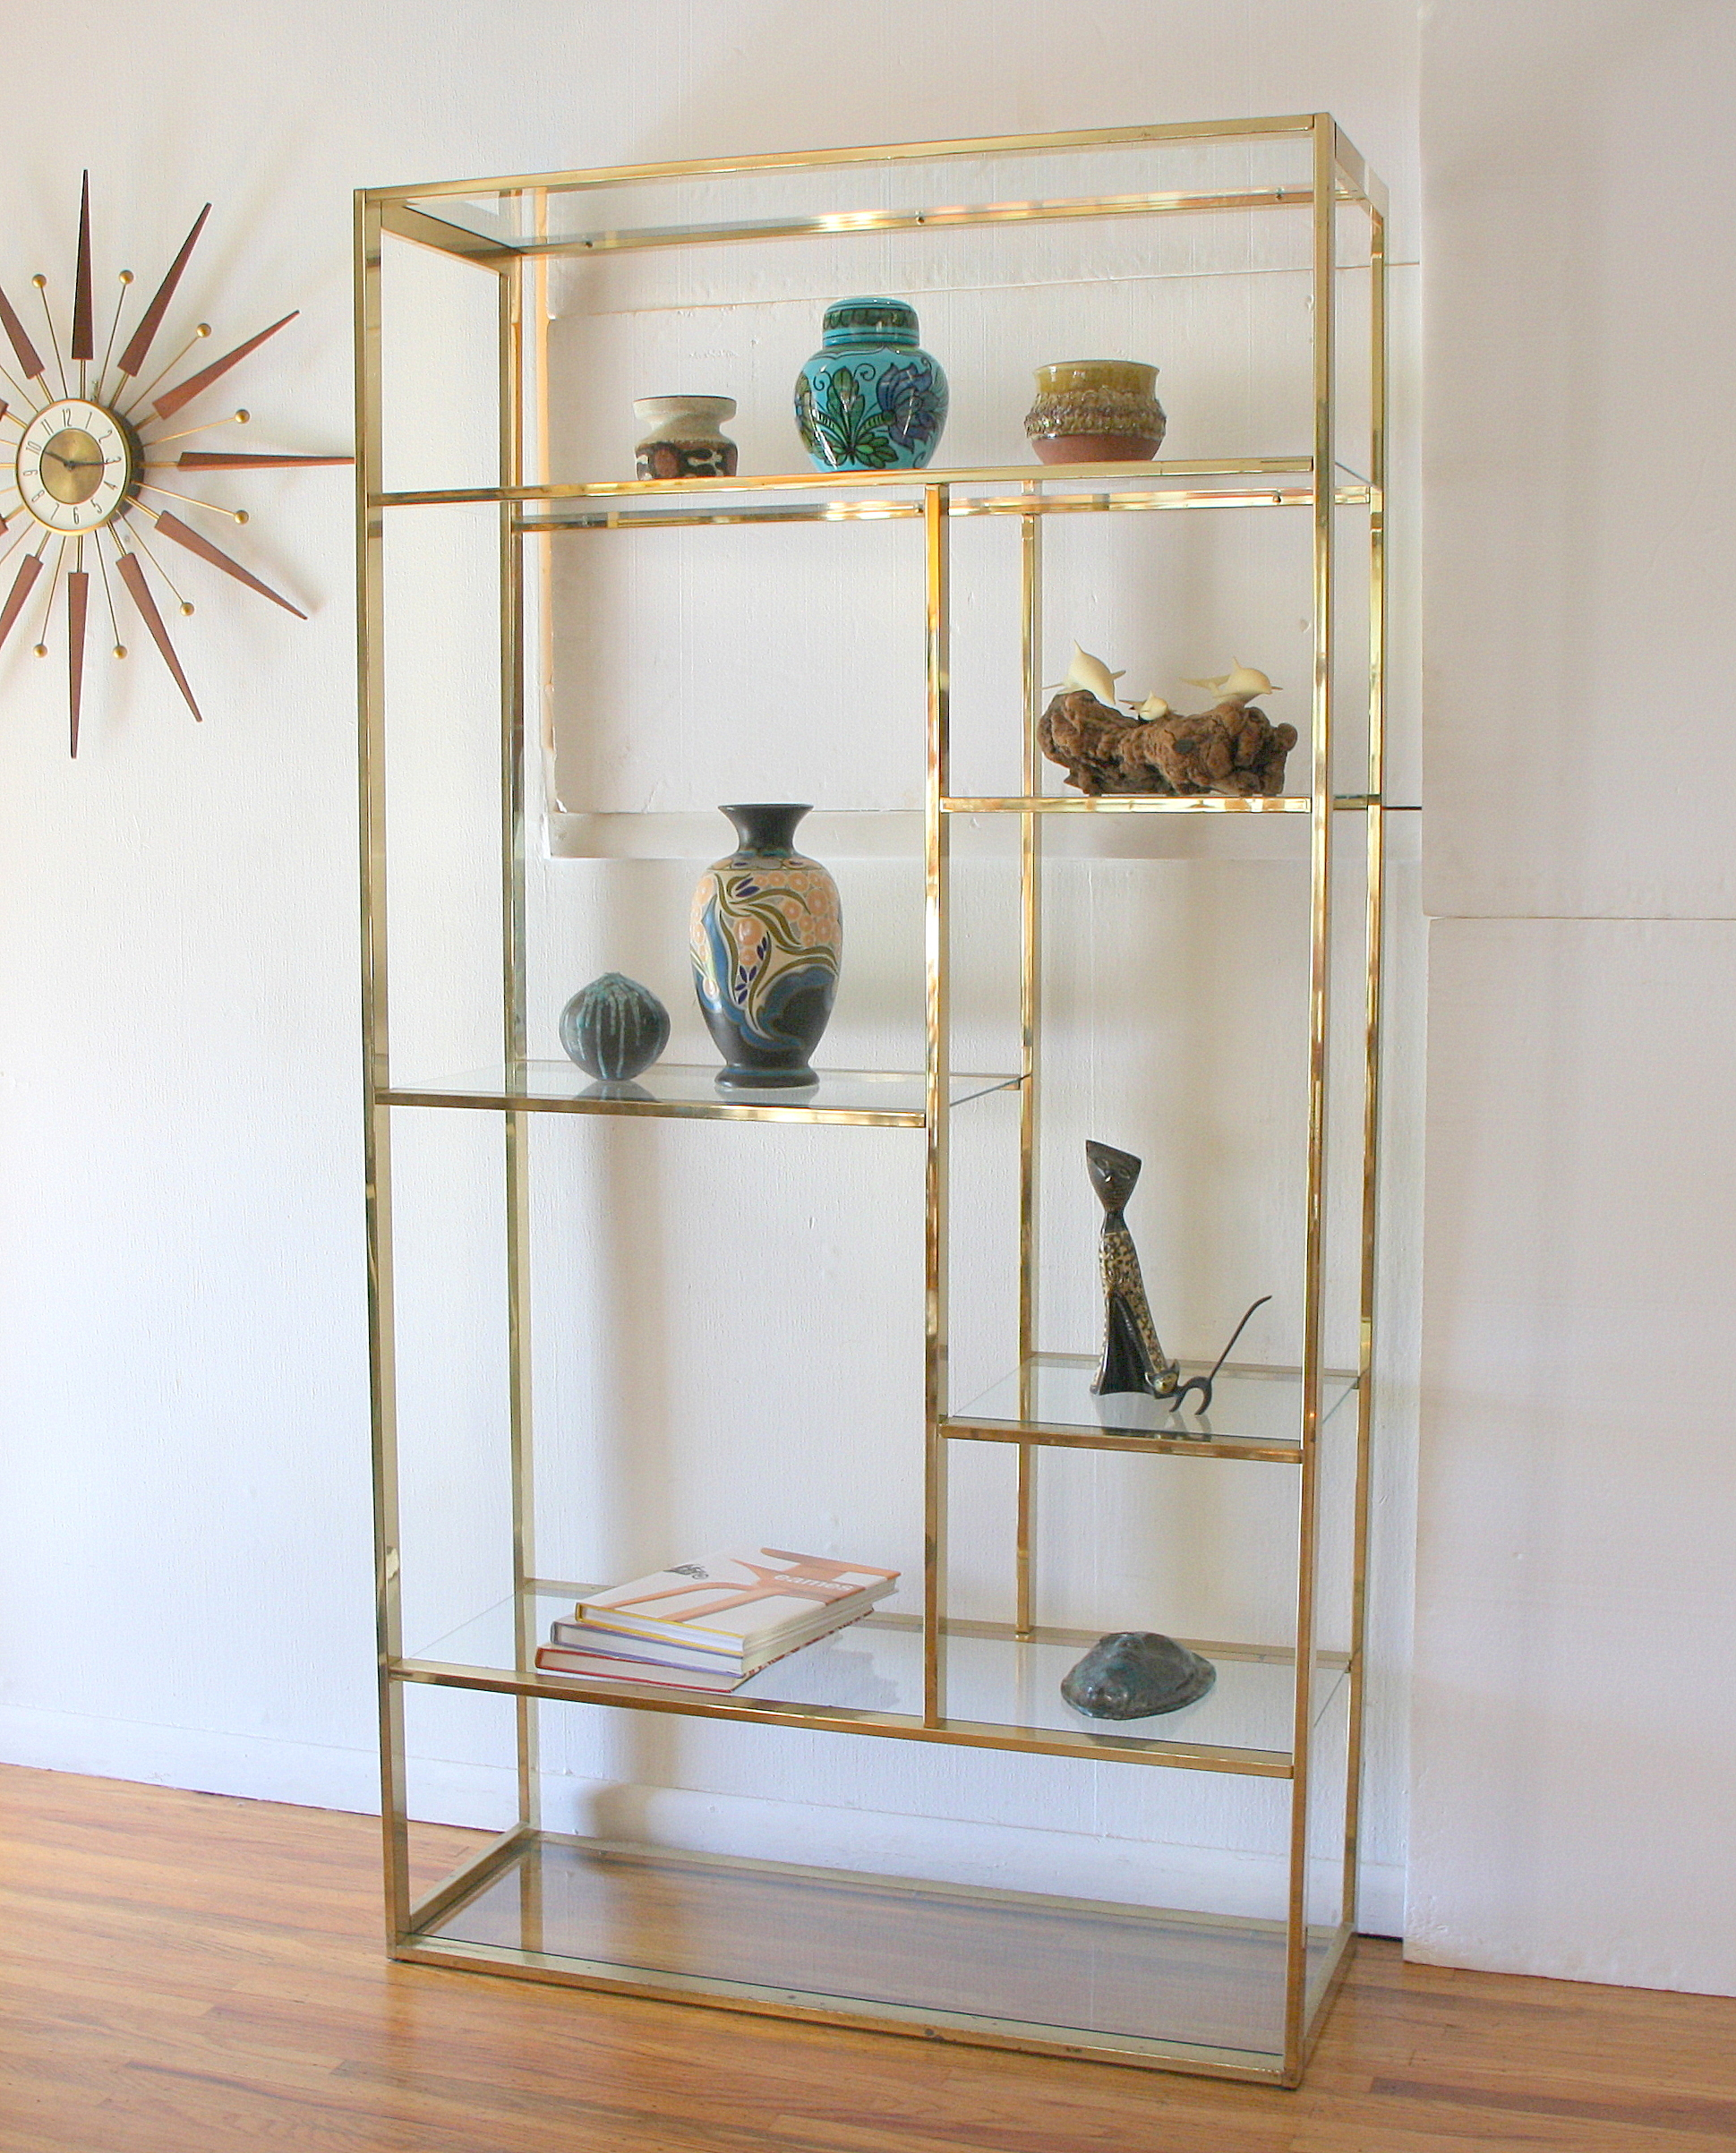 Mcm Brass and glass shelving unit 1.JPG